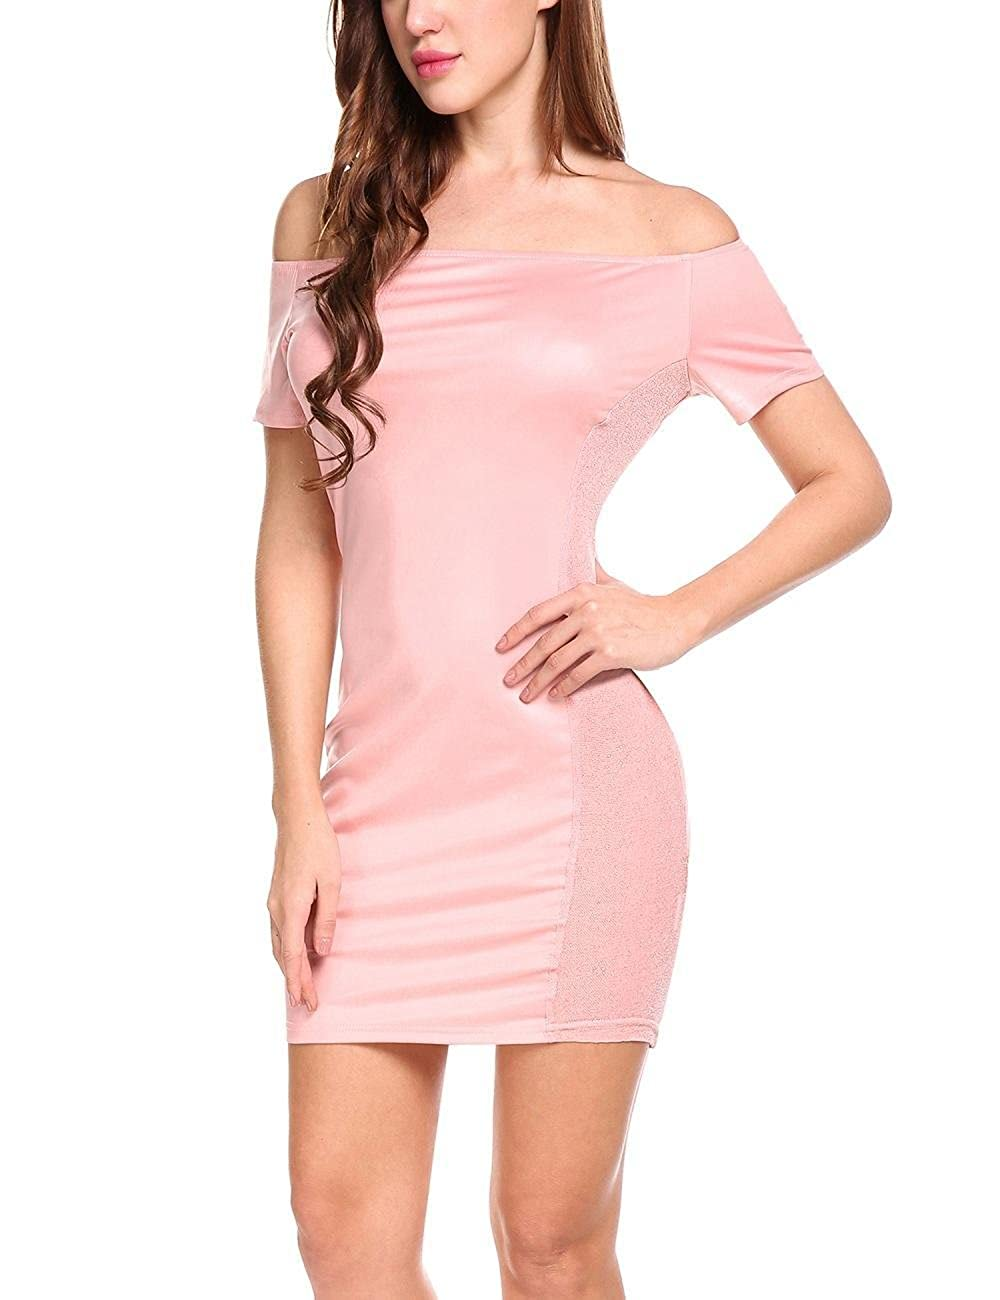 5cc6e3935f8d Loveje Pencil Party Dresses for Women Plus Size Womens Sexy Ruffle Off  Shoulder Mermaid Bodycon Evening Midi Dress Dresses at Amazon Women s  Clothing store